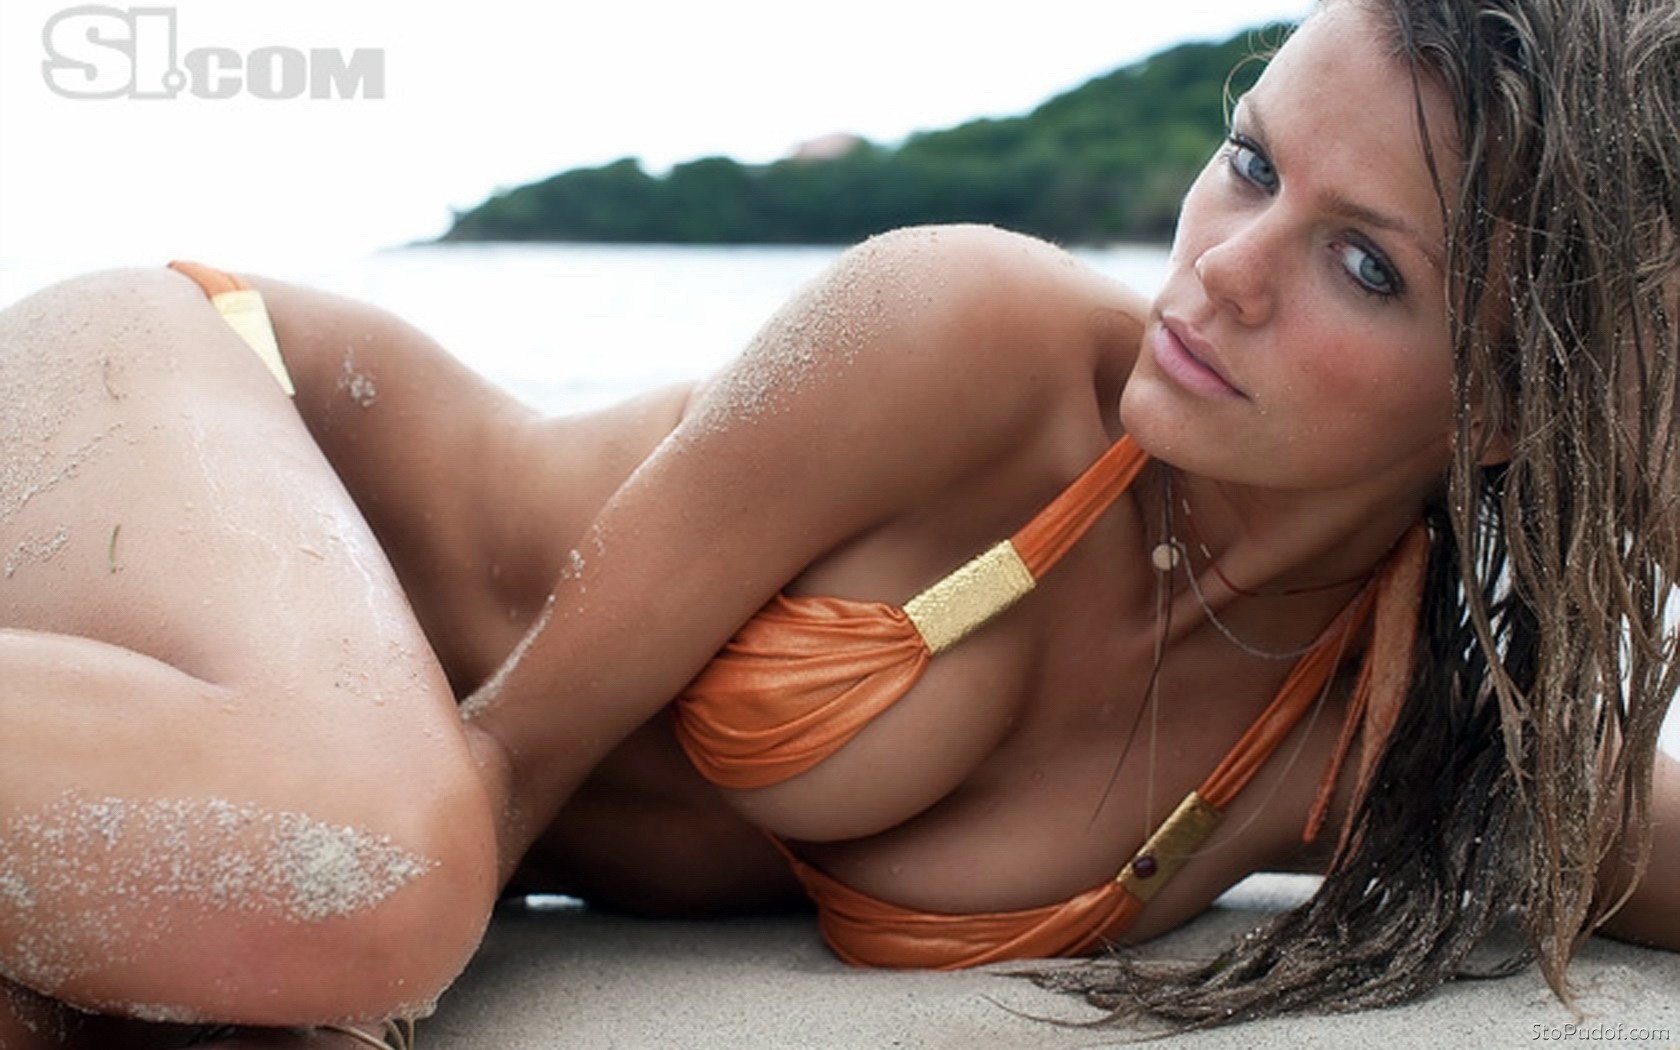 Brooklyn Decker naked pictures here - UkPhotoSafari